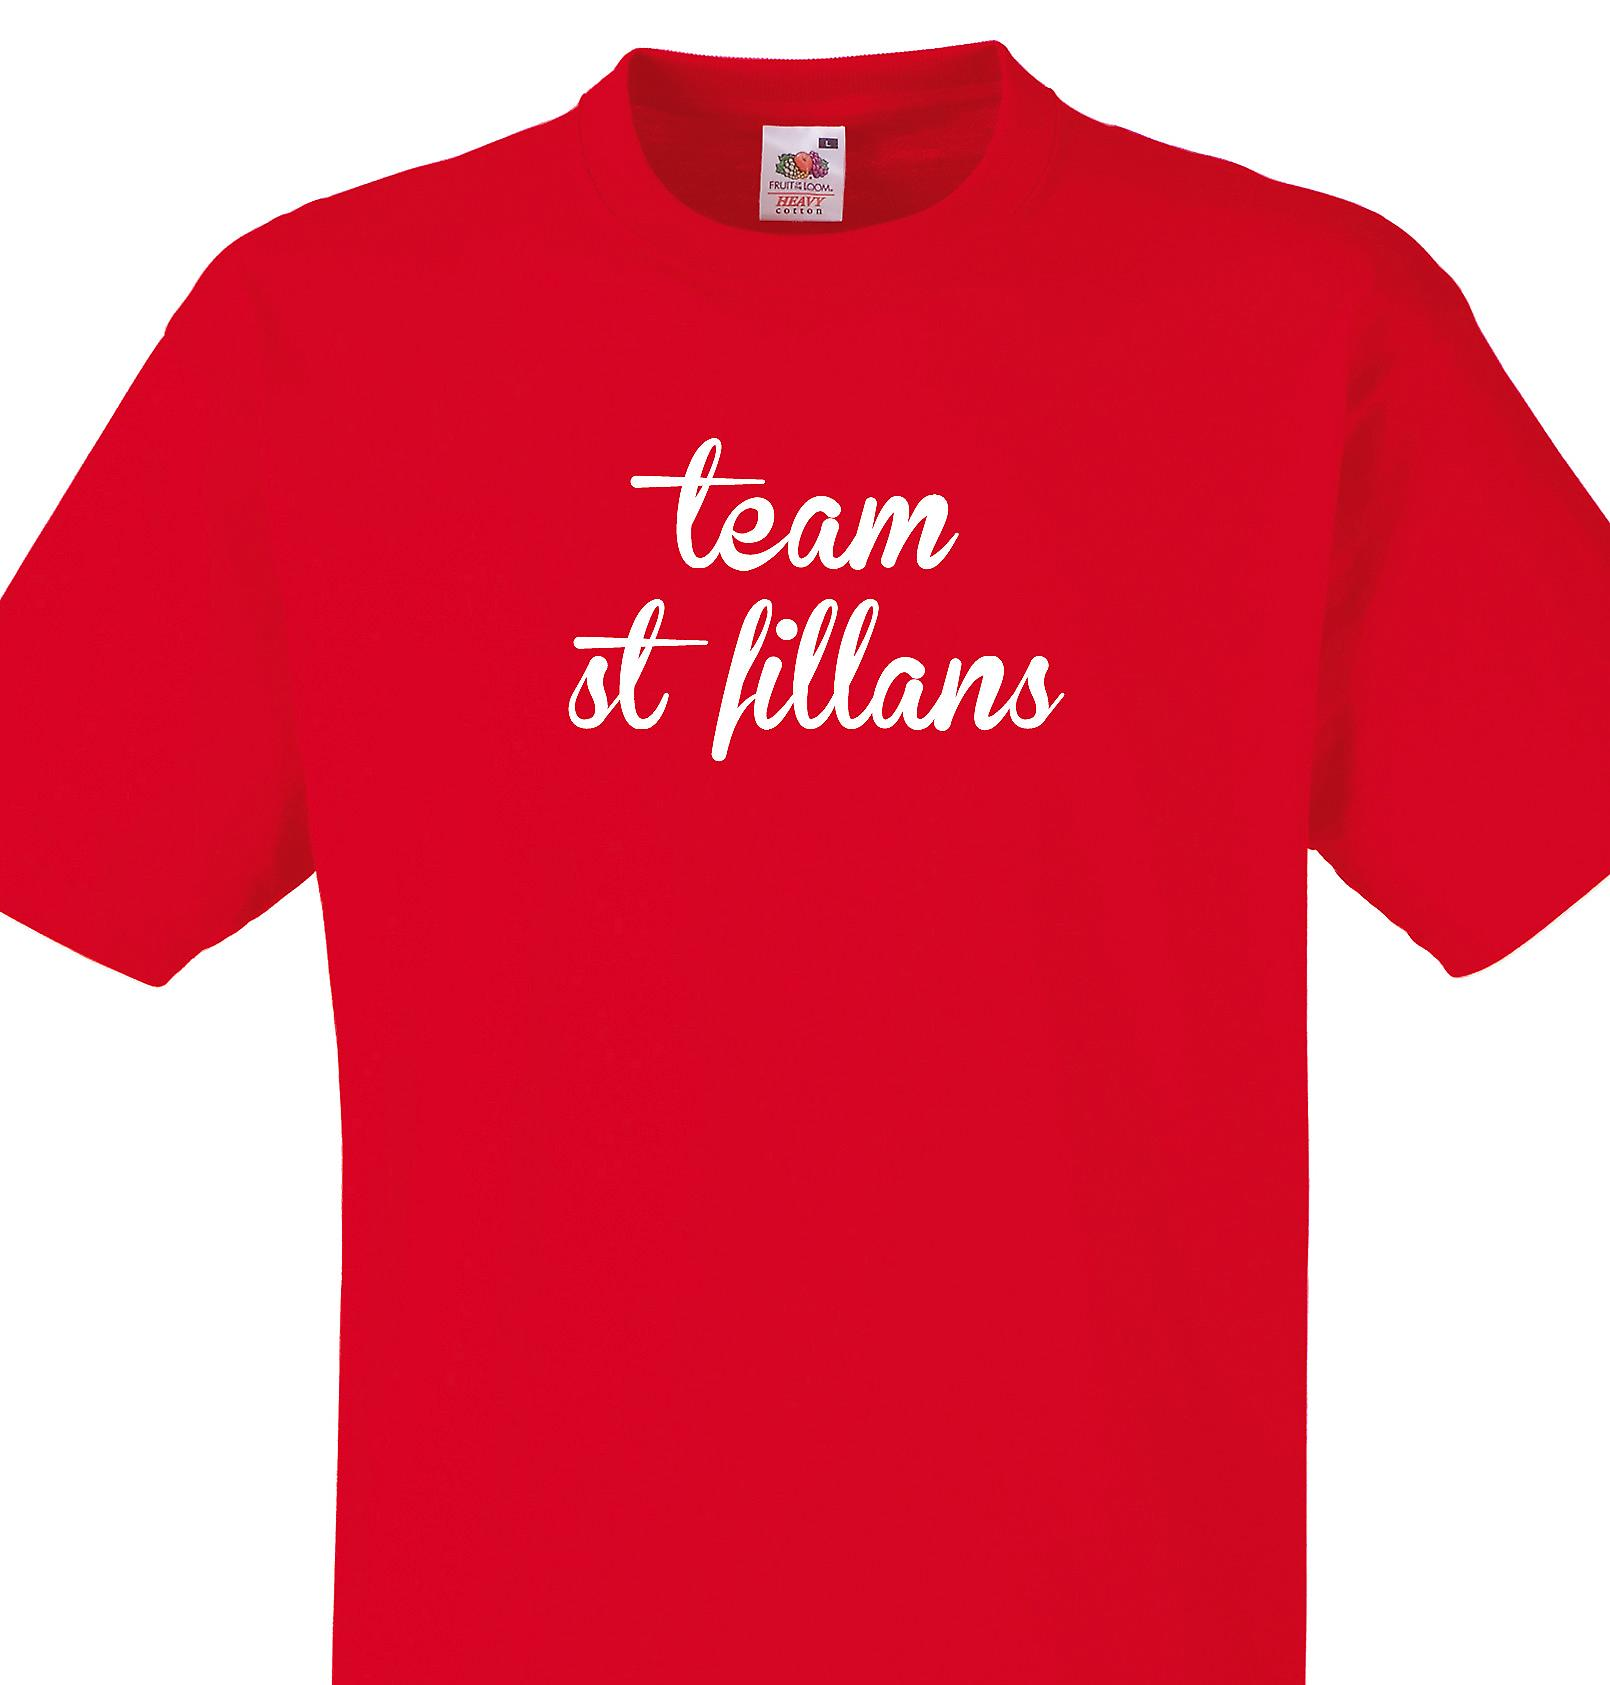 Team St fillans Red T shirt